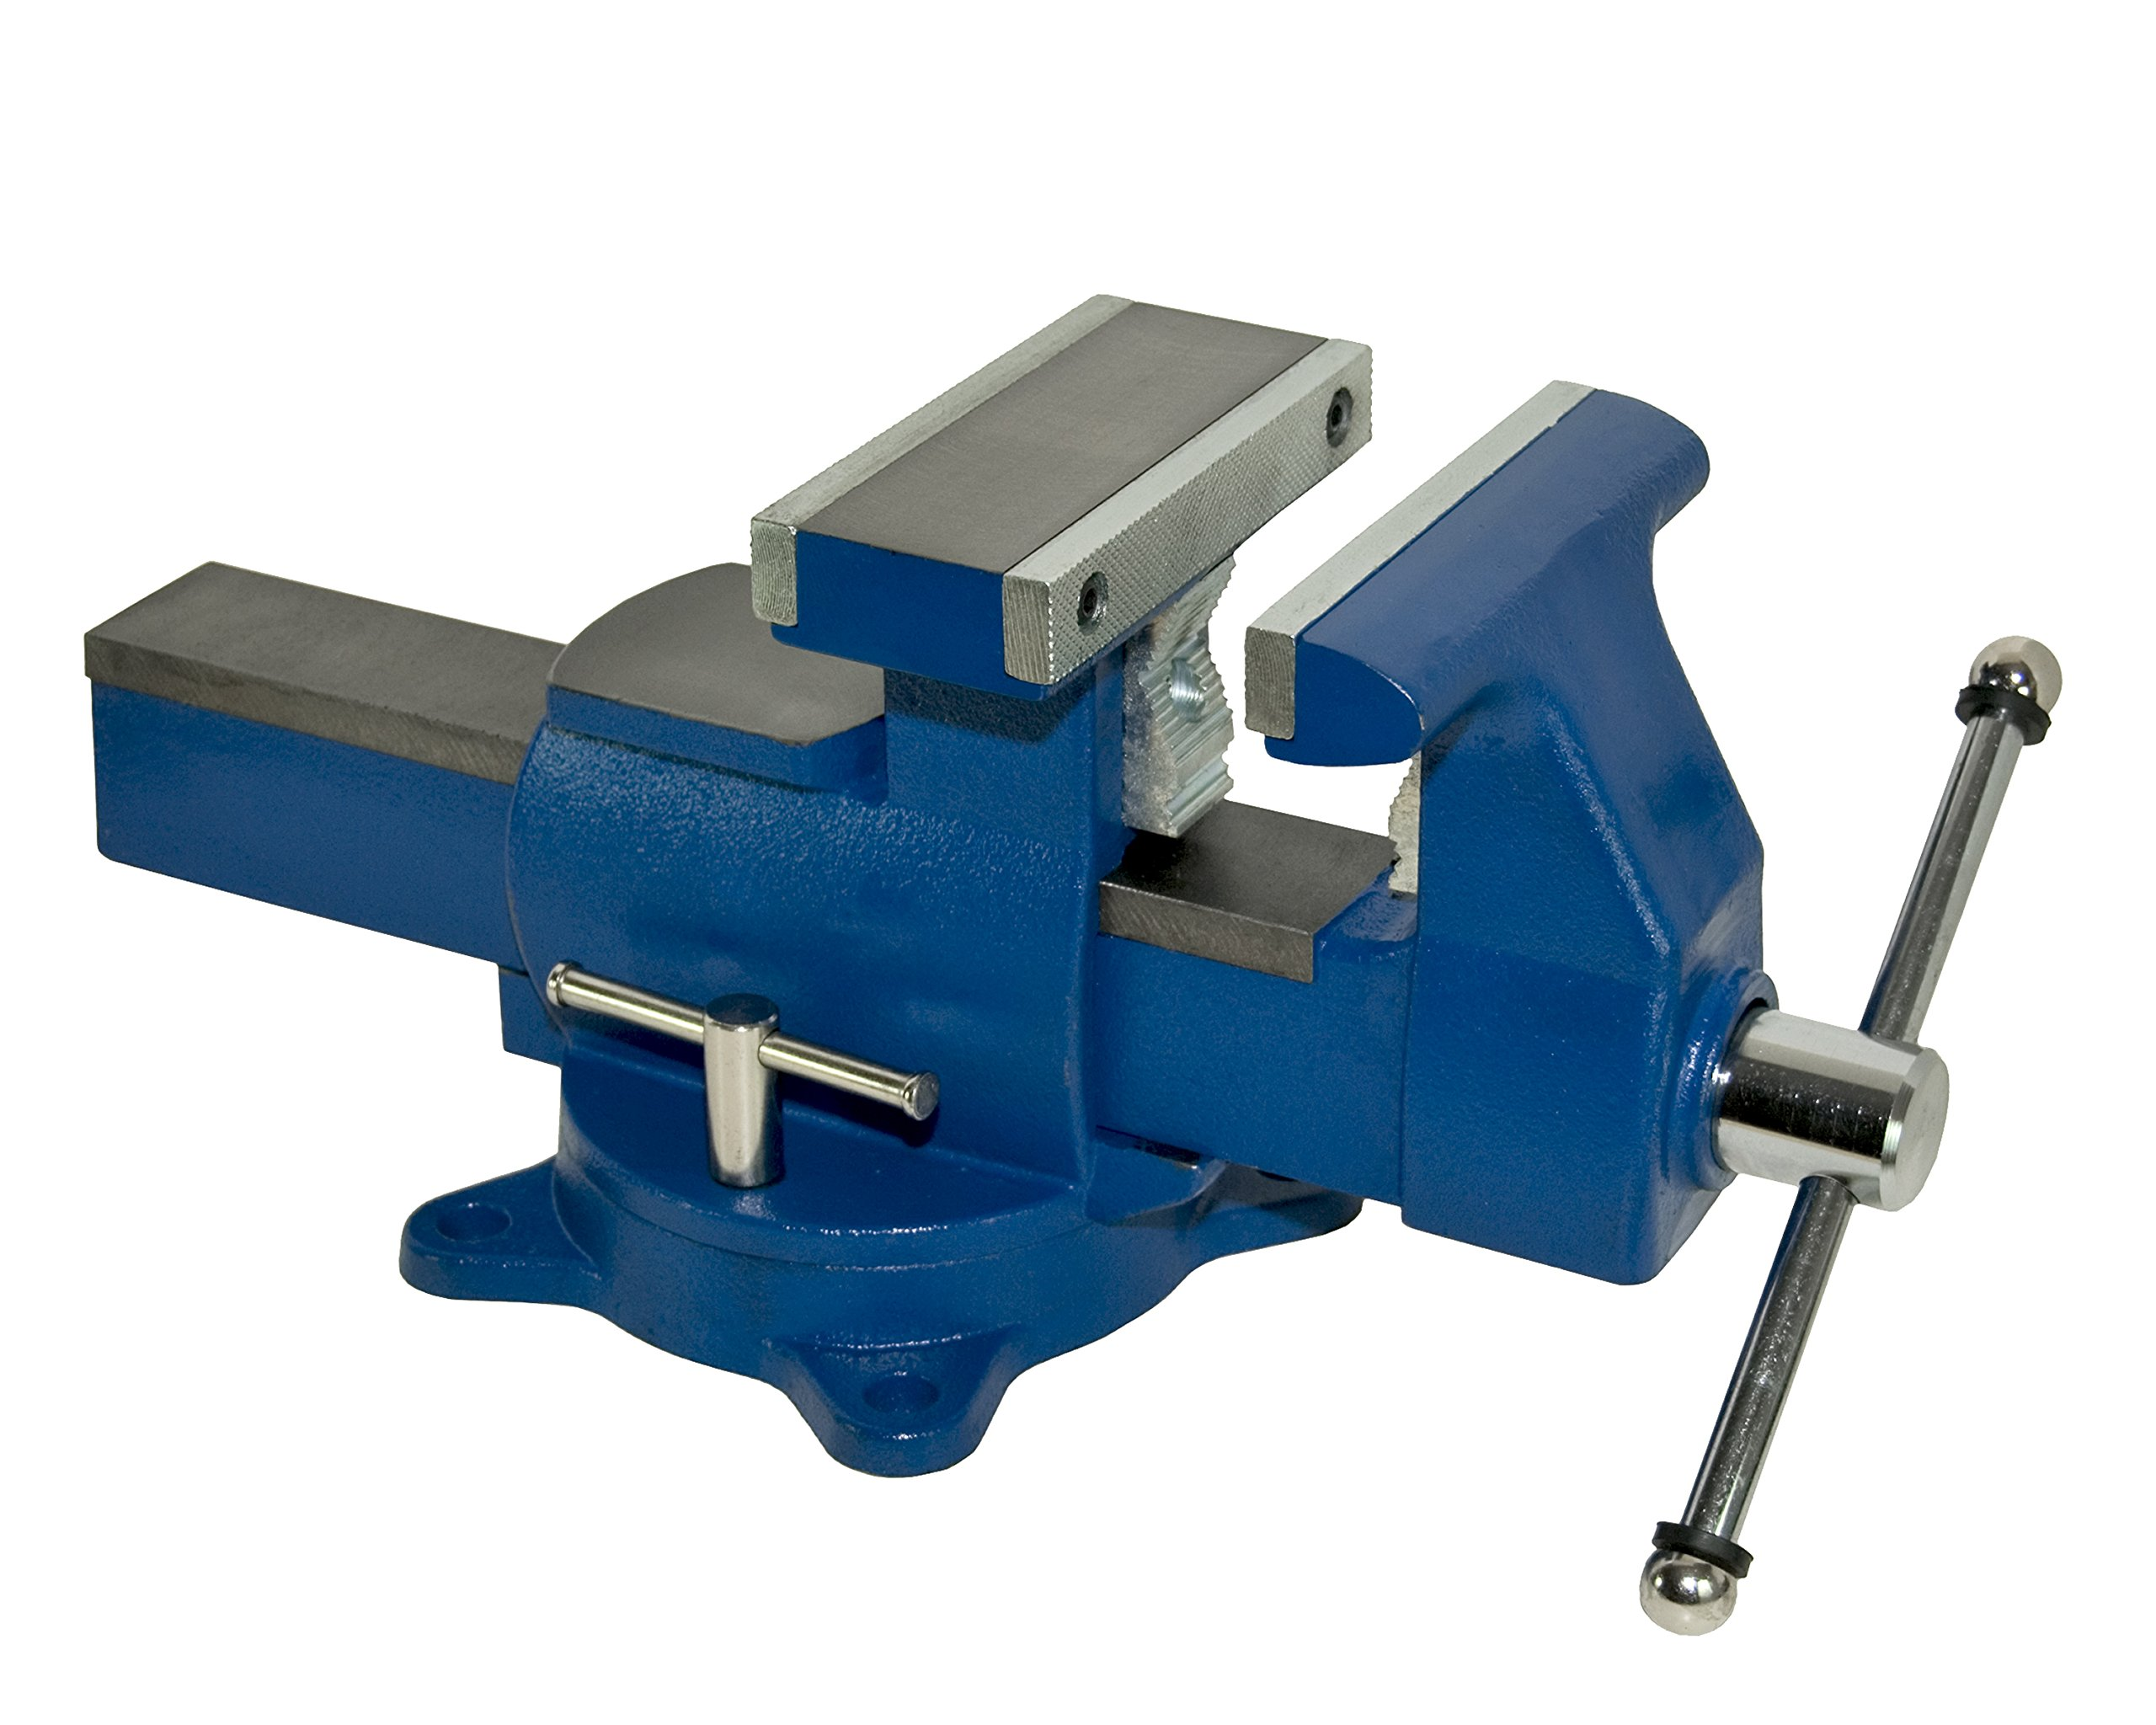 Yost Vises 865-DI 6.5'' Heavy Duty Reversible Bench Vise Made in USA by Yost Tools